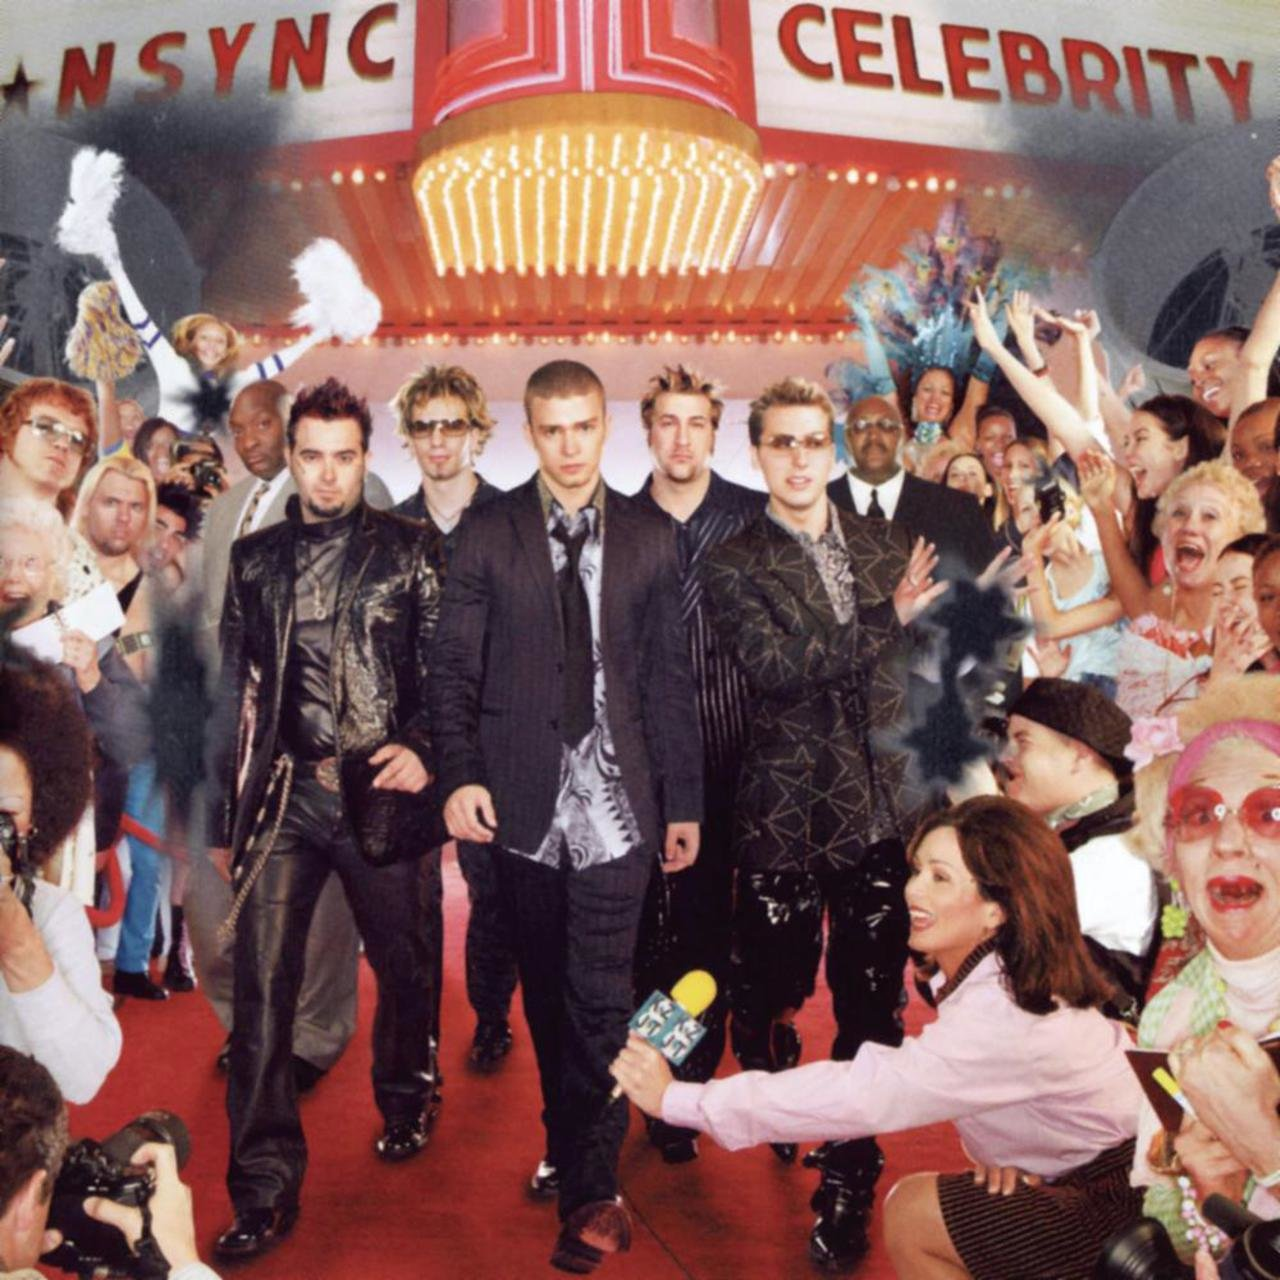 Nsync - Celebrity (Song) - YouTube